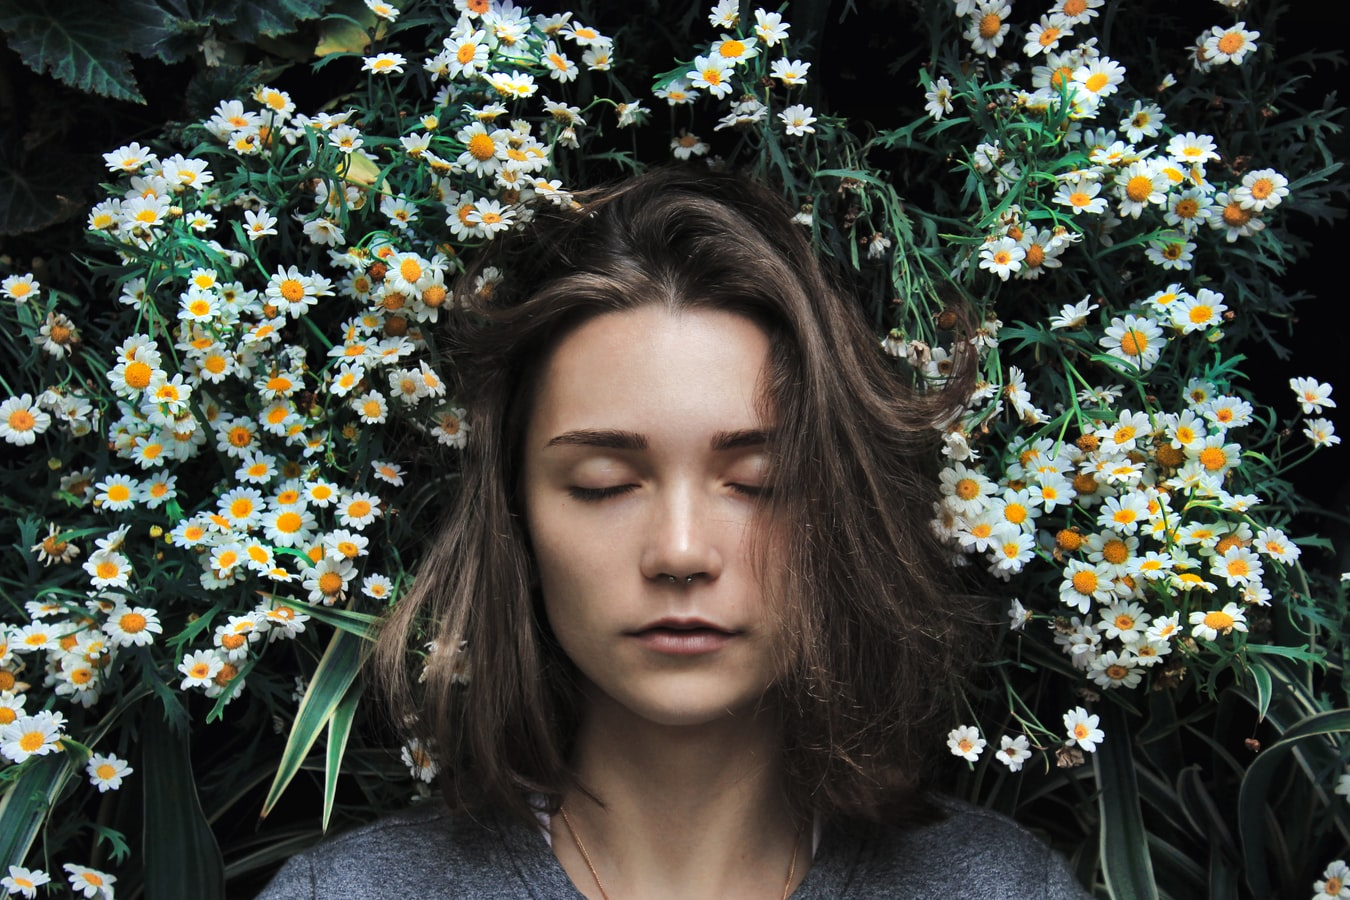 girl with closed ones surrounded by small white flowers